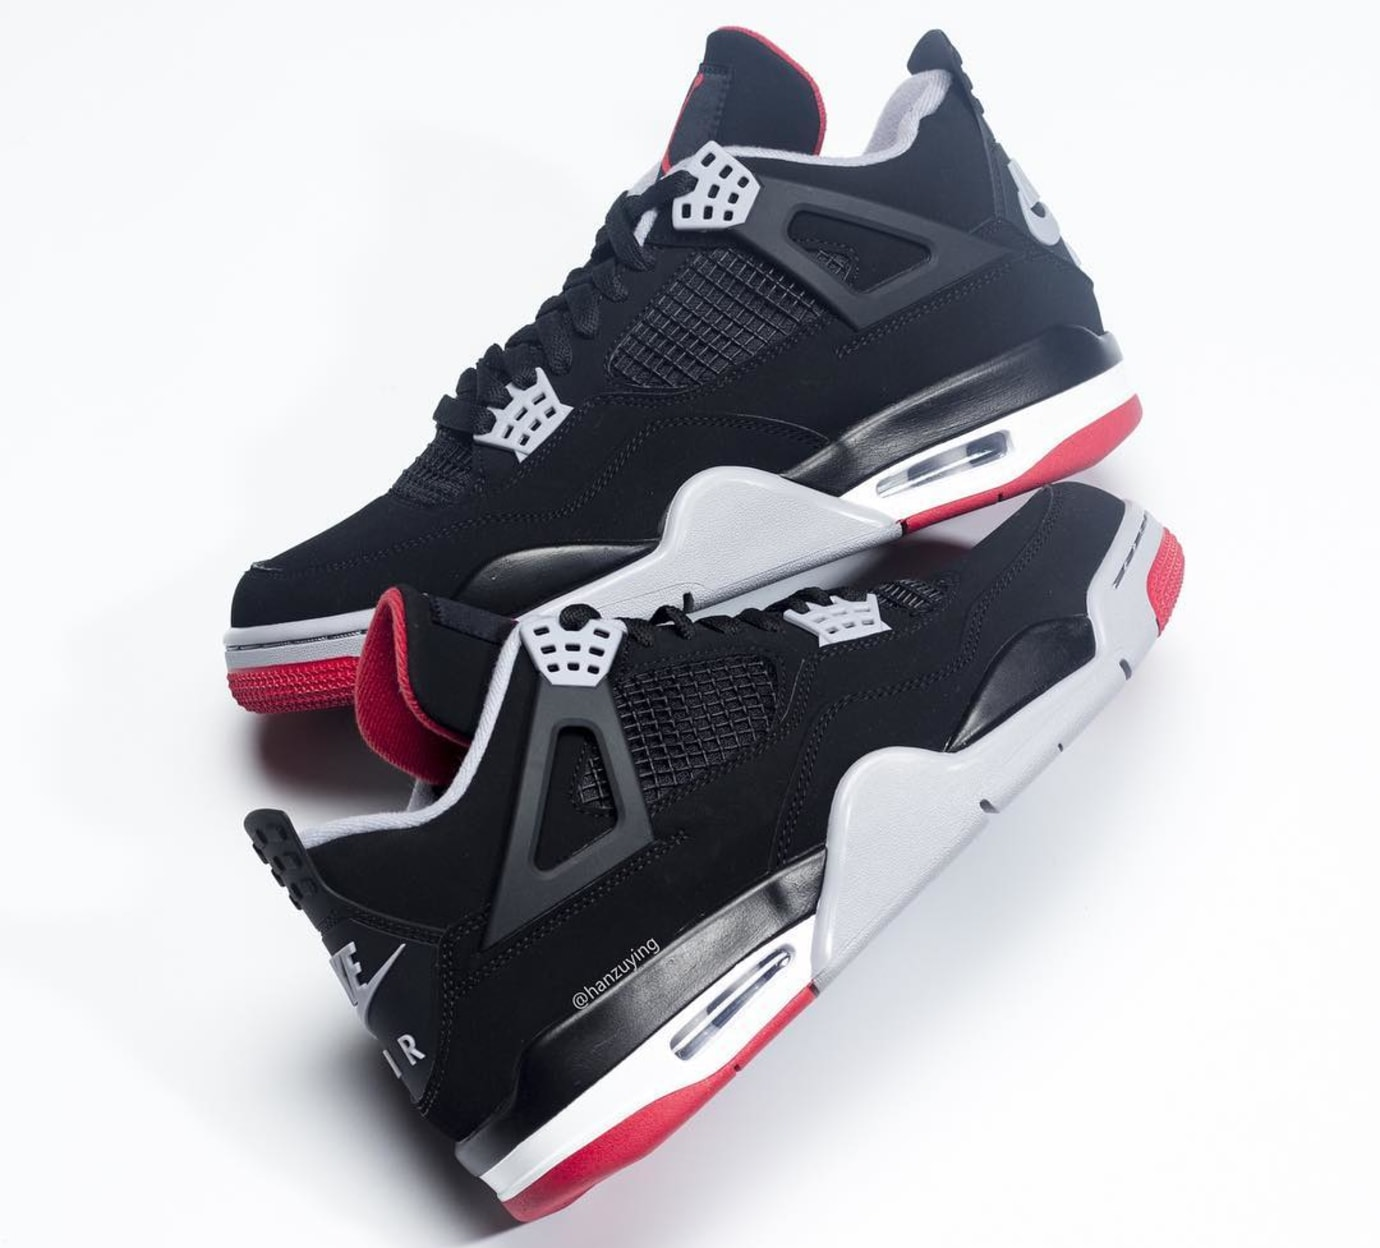 69b31f13ac6 Air Jordan 4 Retro  Black Cement Grey Summit White Fire Red  308497 ...